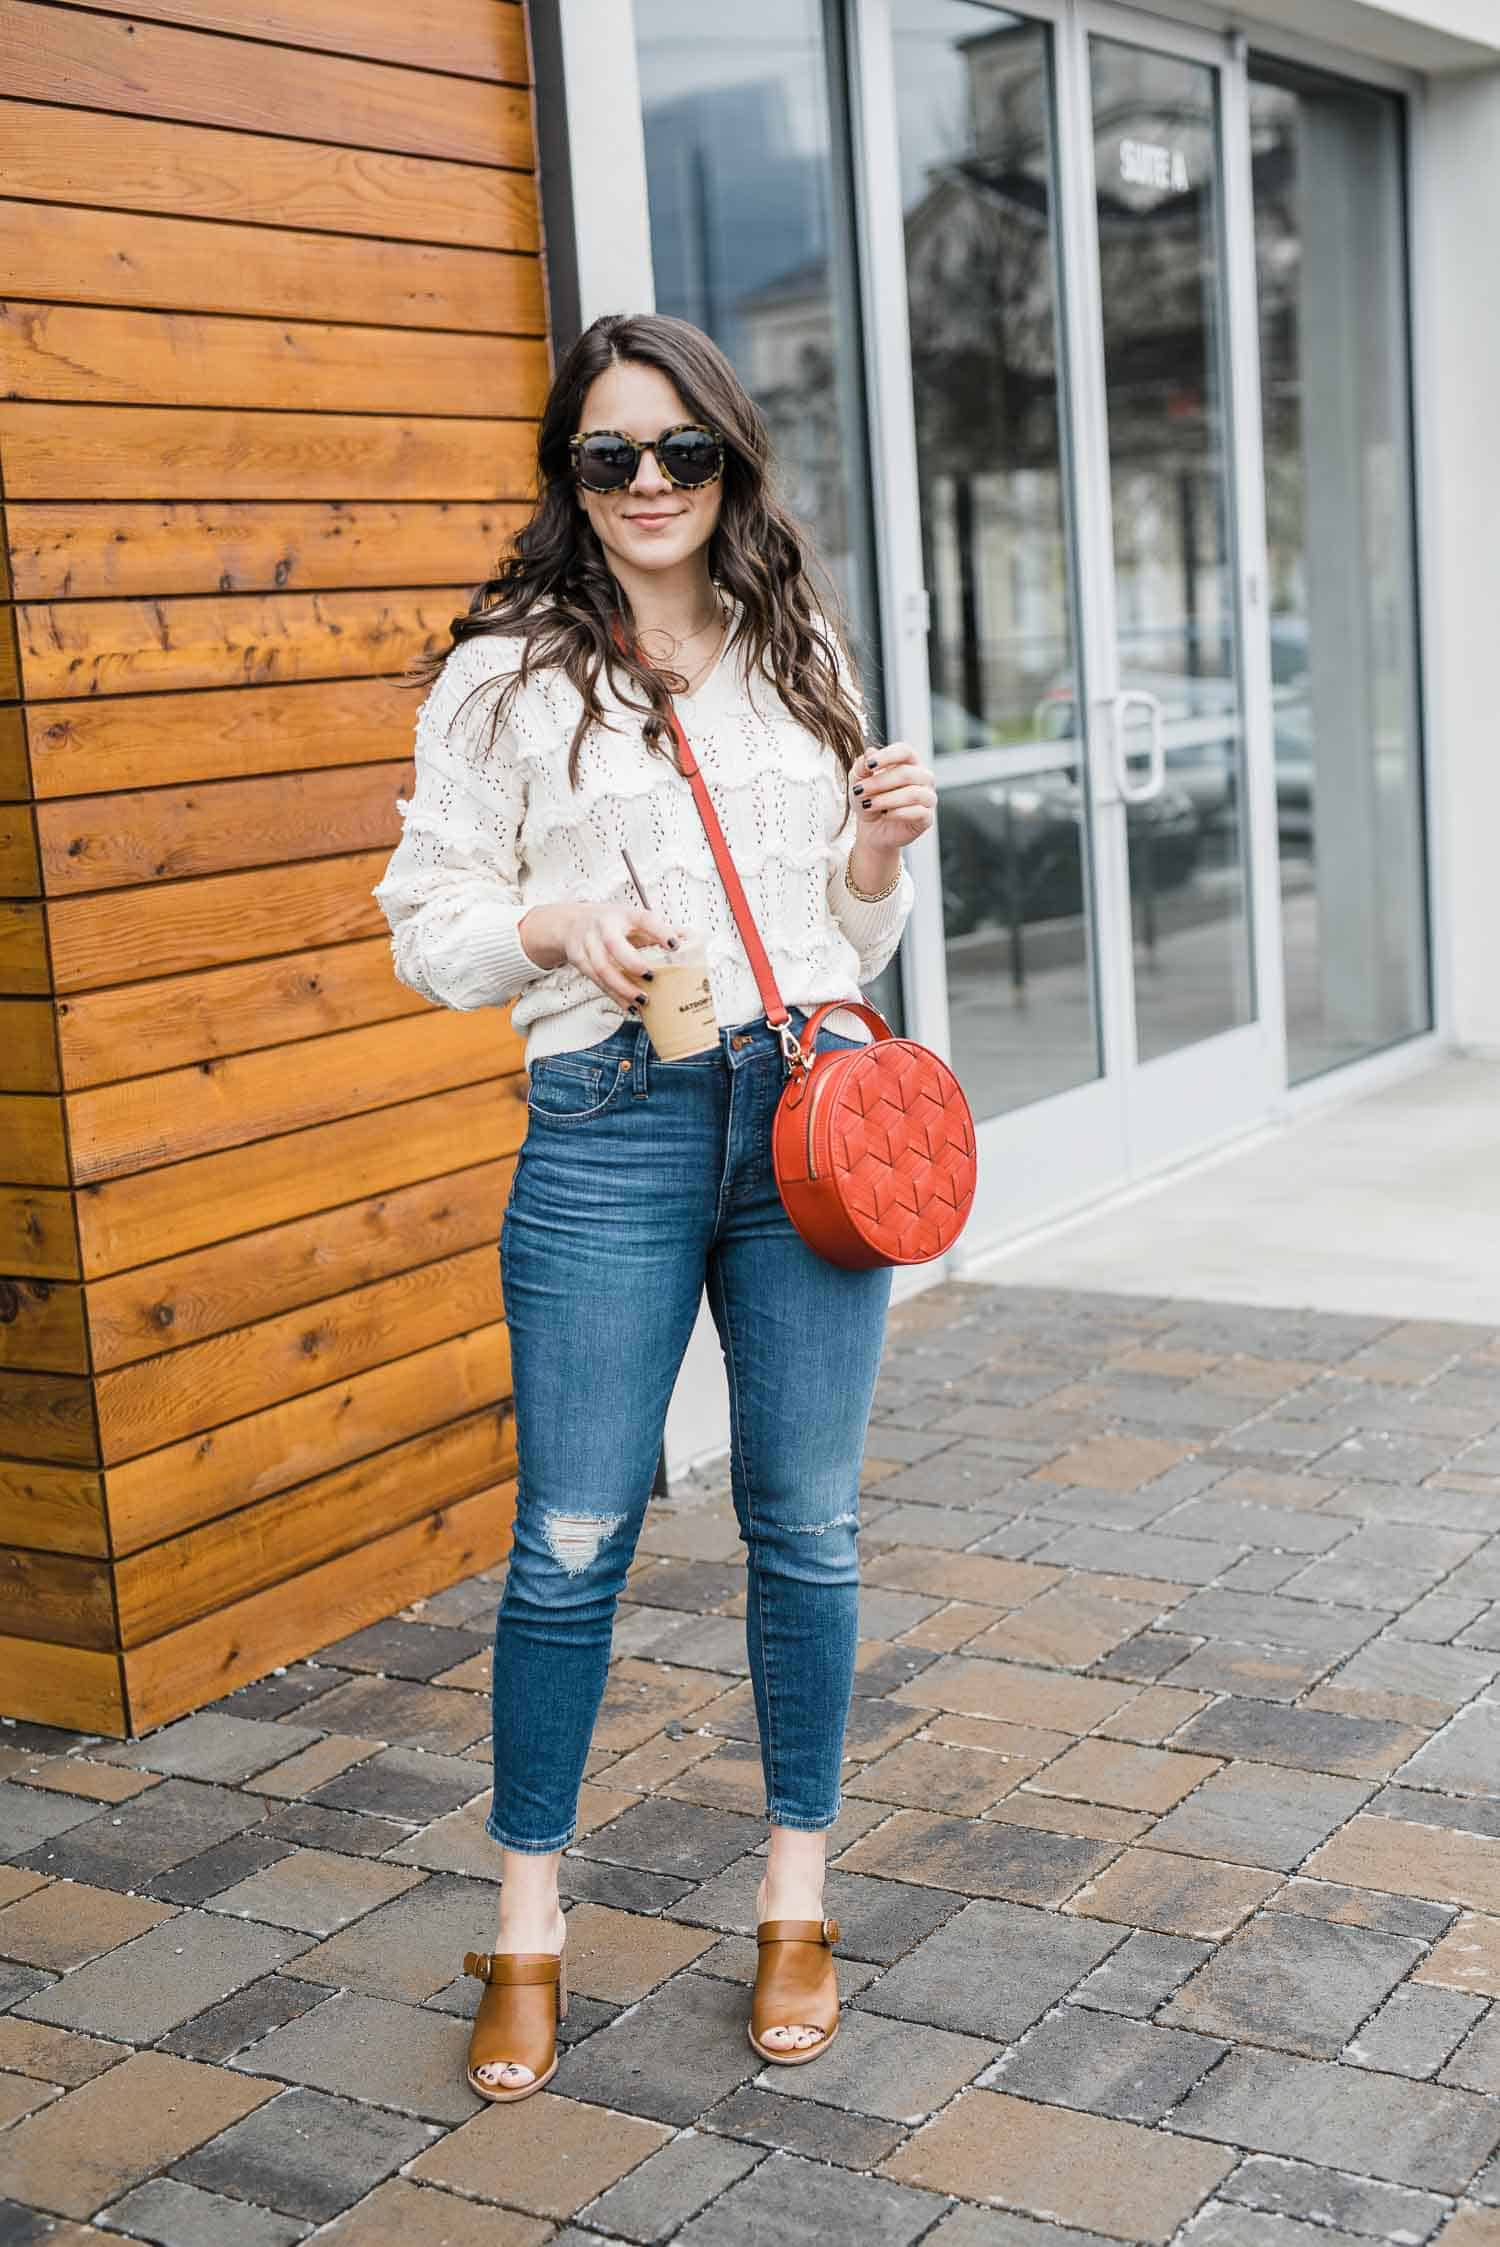 Jessica Camerata is wearing a cream spring sweater, Madewell jeans